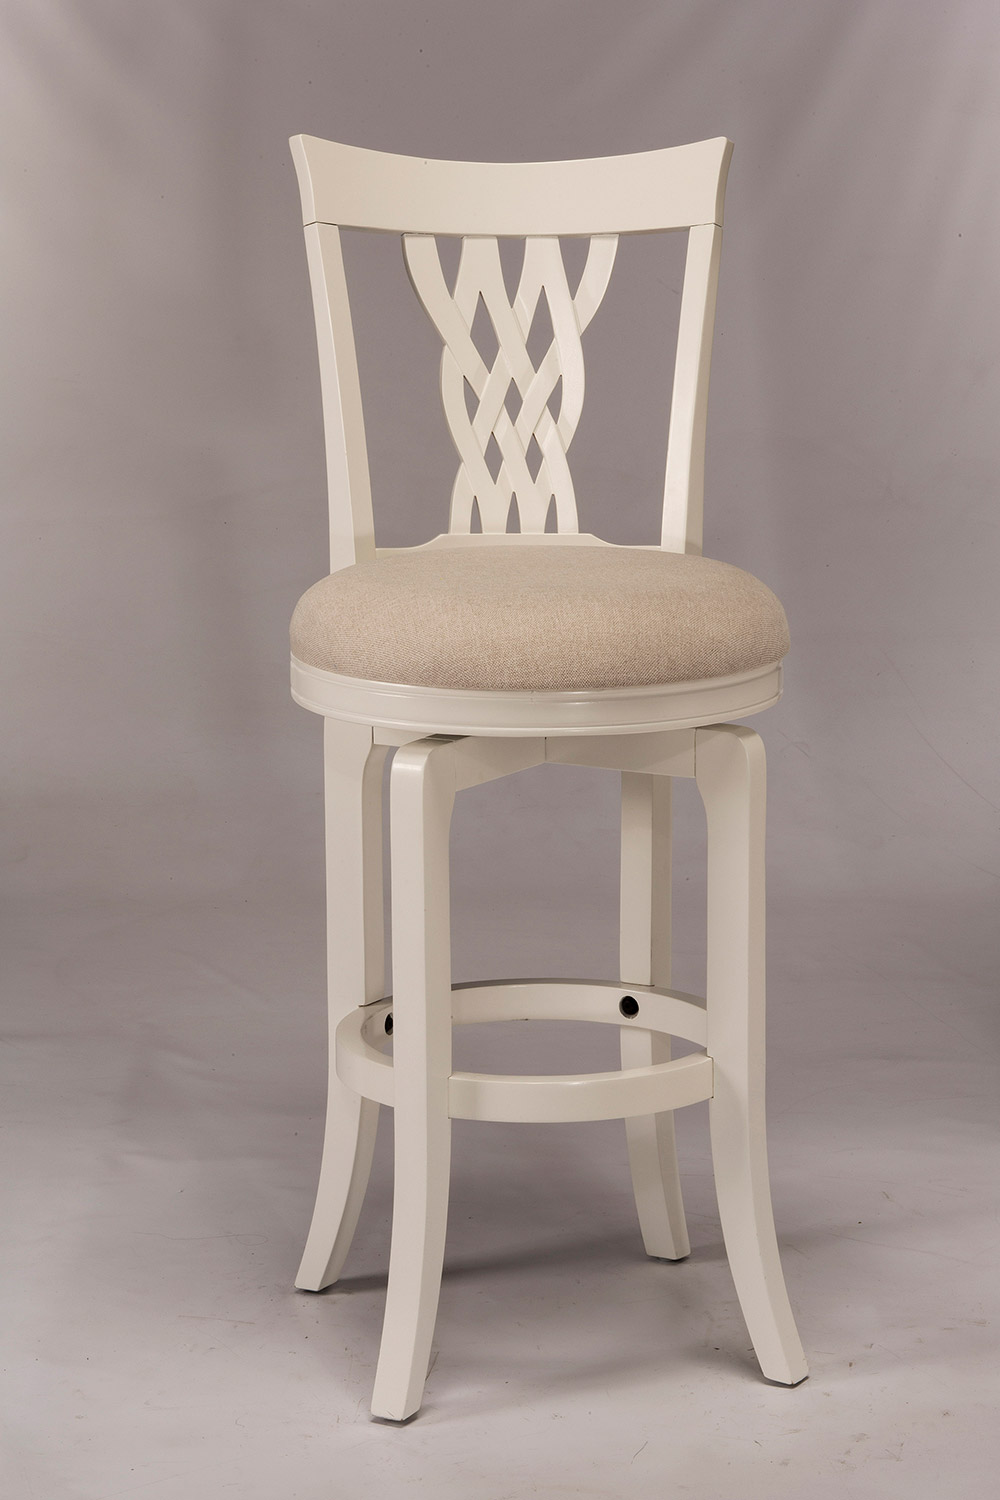 Hillsdale Embassy Swivel Bar Stool - White